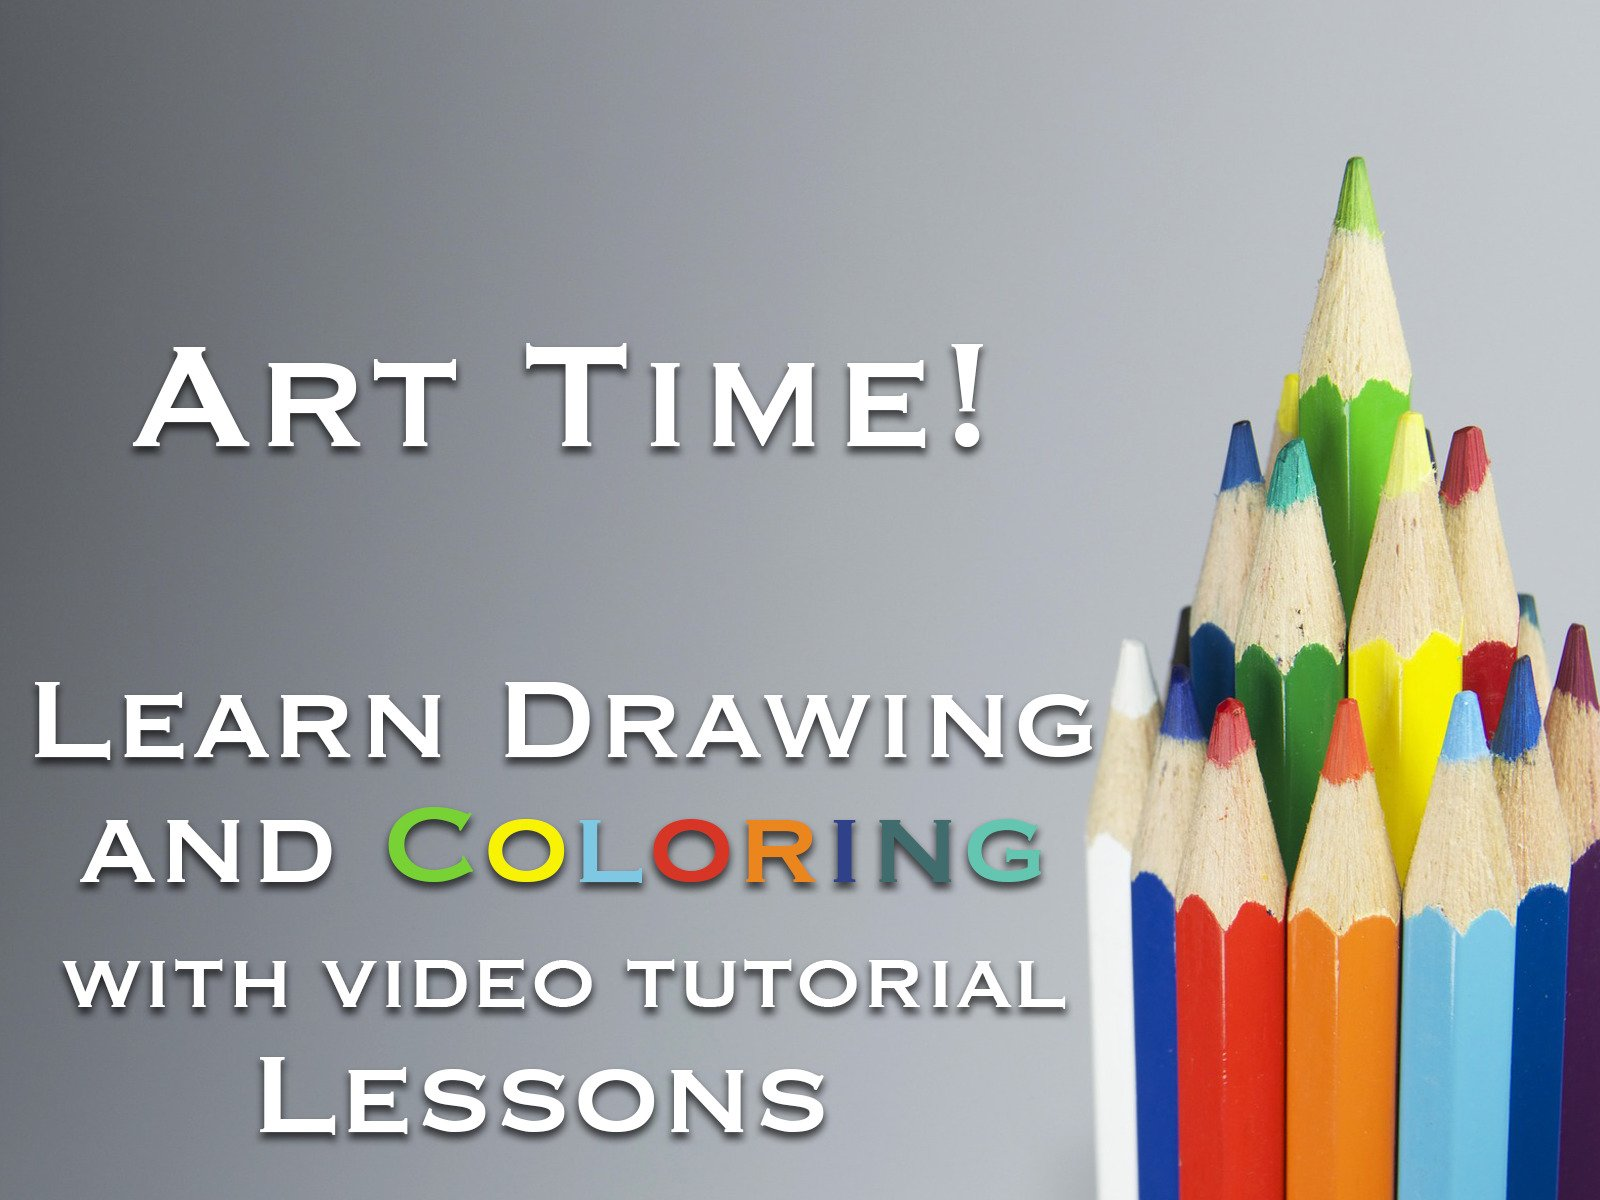 Art Time! Learn Drawing and Coloring with Video Tutorial Lessons - Season 1